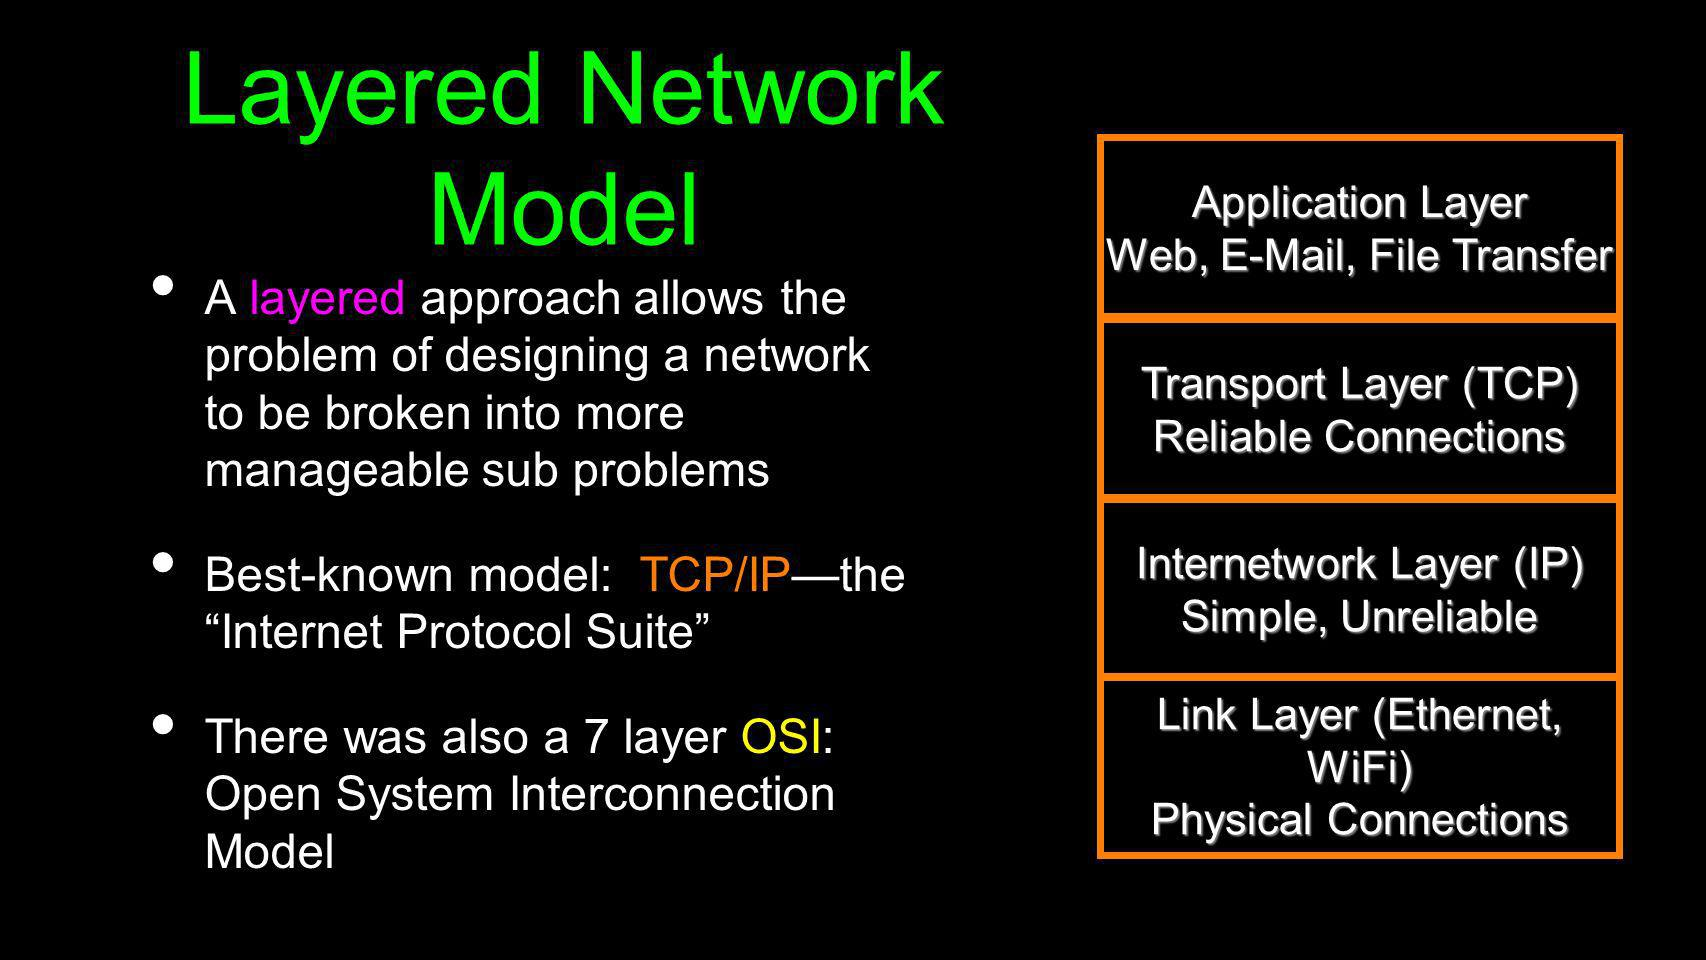 Layered Network Model A layered approach allows the problem of designing a network to be broken into more manageable sub problems Best-known model: TC